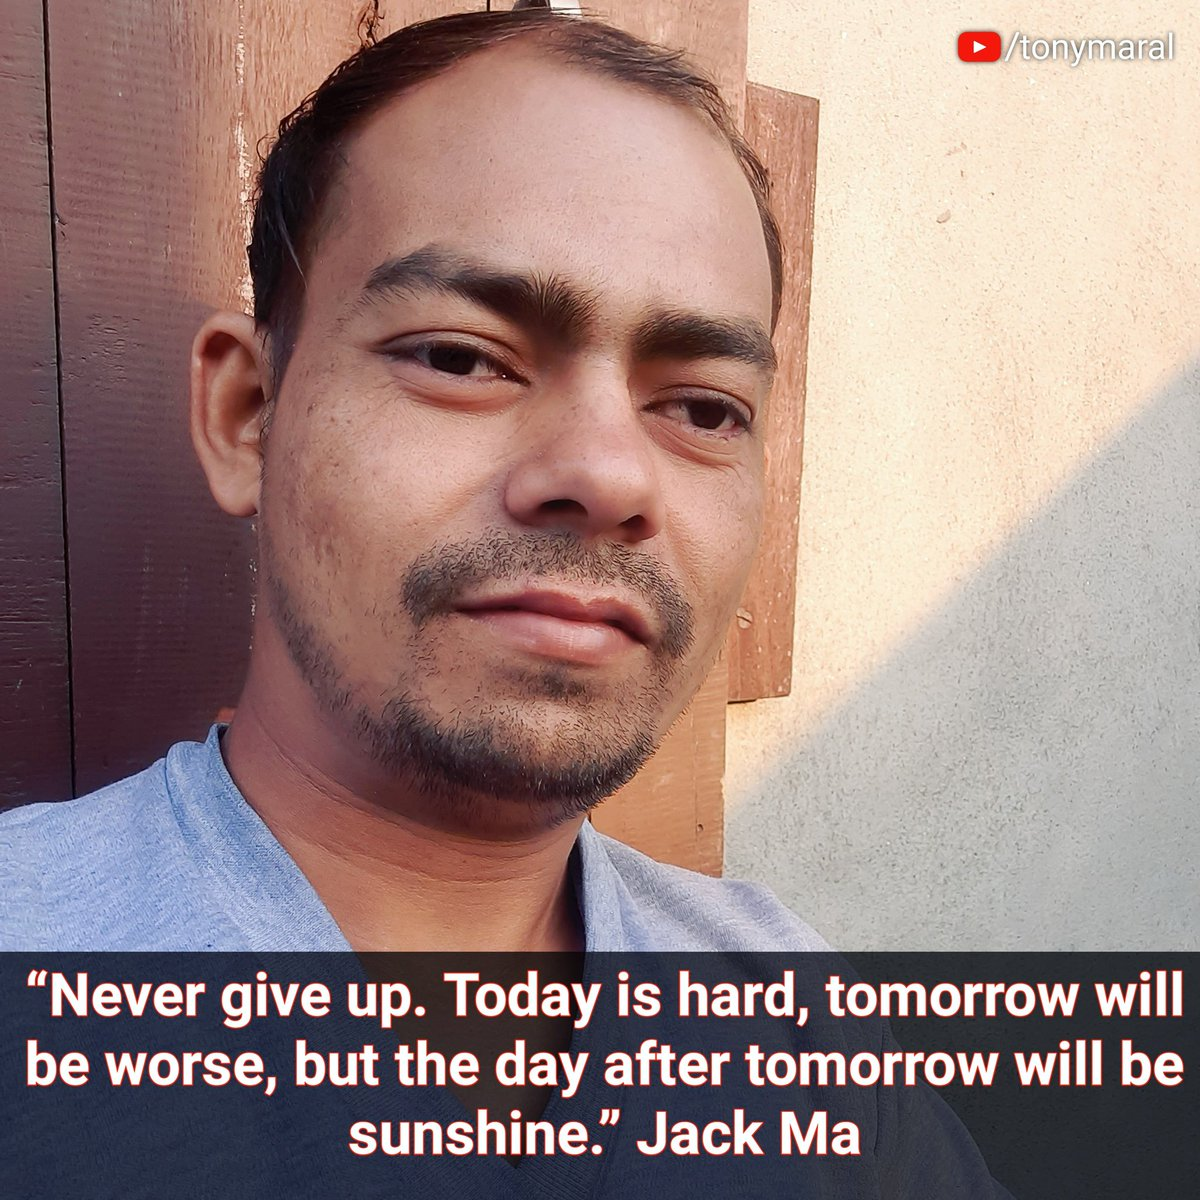 """""""Never give up. Today is hard, tomorrow will be worse, but the day after tomorrowwill be sunshine."""" Jack Ma  """"कभी हार मत मानो। आज कठिन है, कल और भी बदतर होगा, लेकिन कल के बाद का दिन धूप होगा। """" जैक मा  #BetterTogether #FridayThoughts #fridaymorning #entrepreneur"""